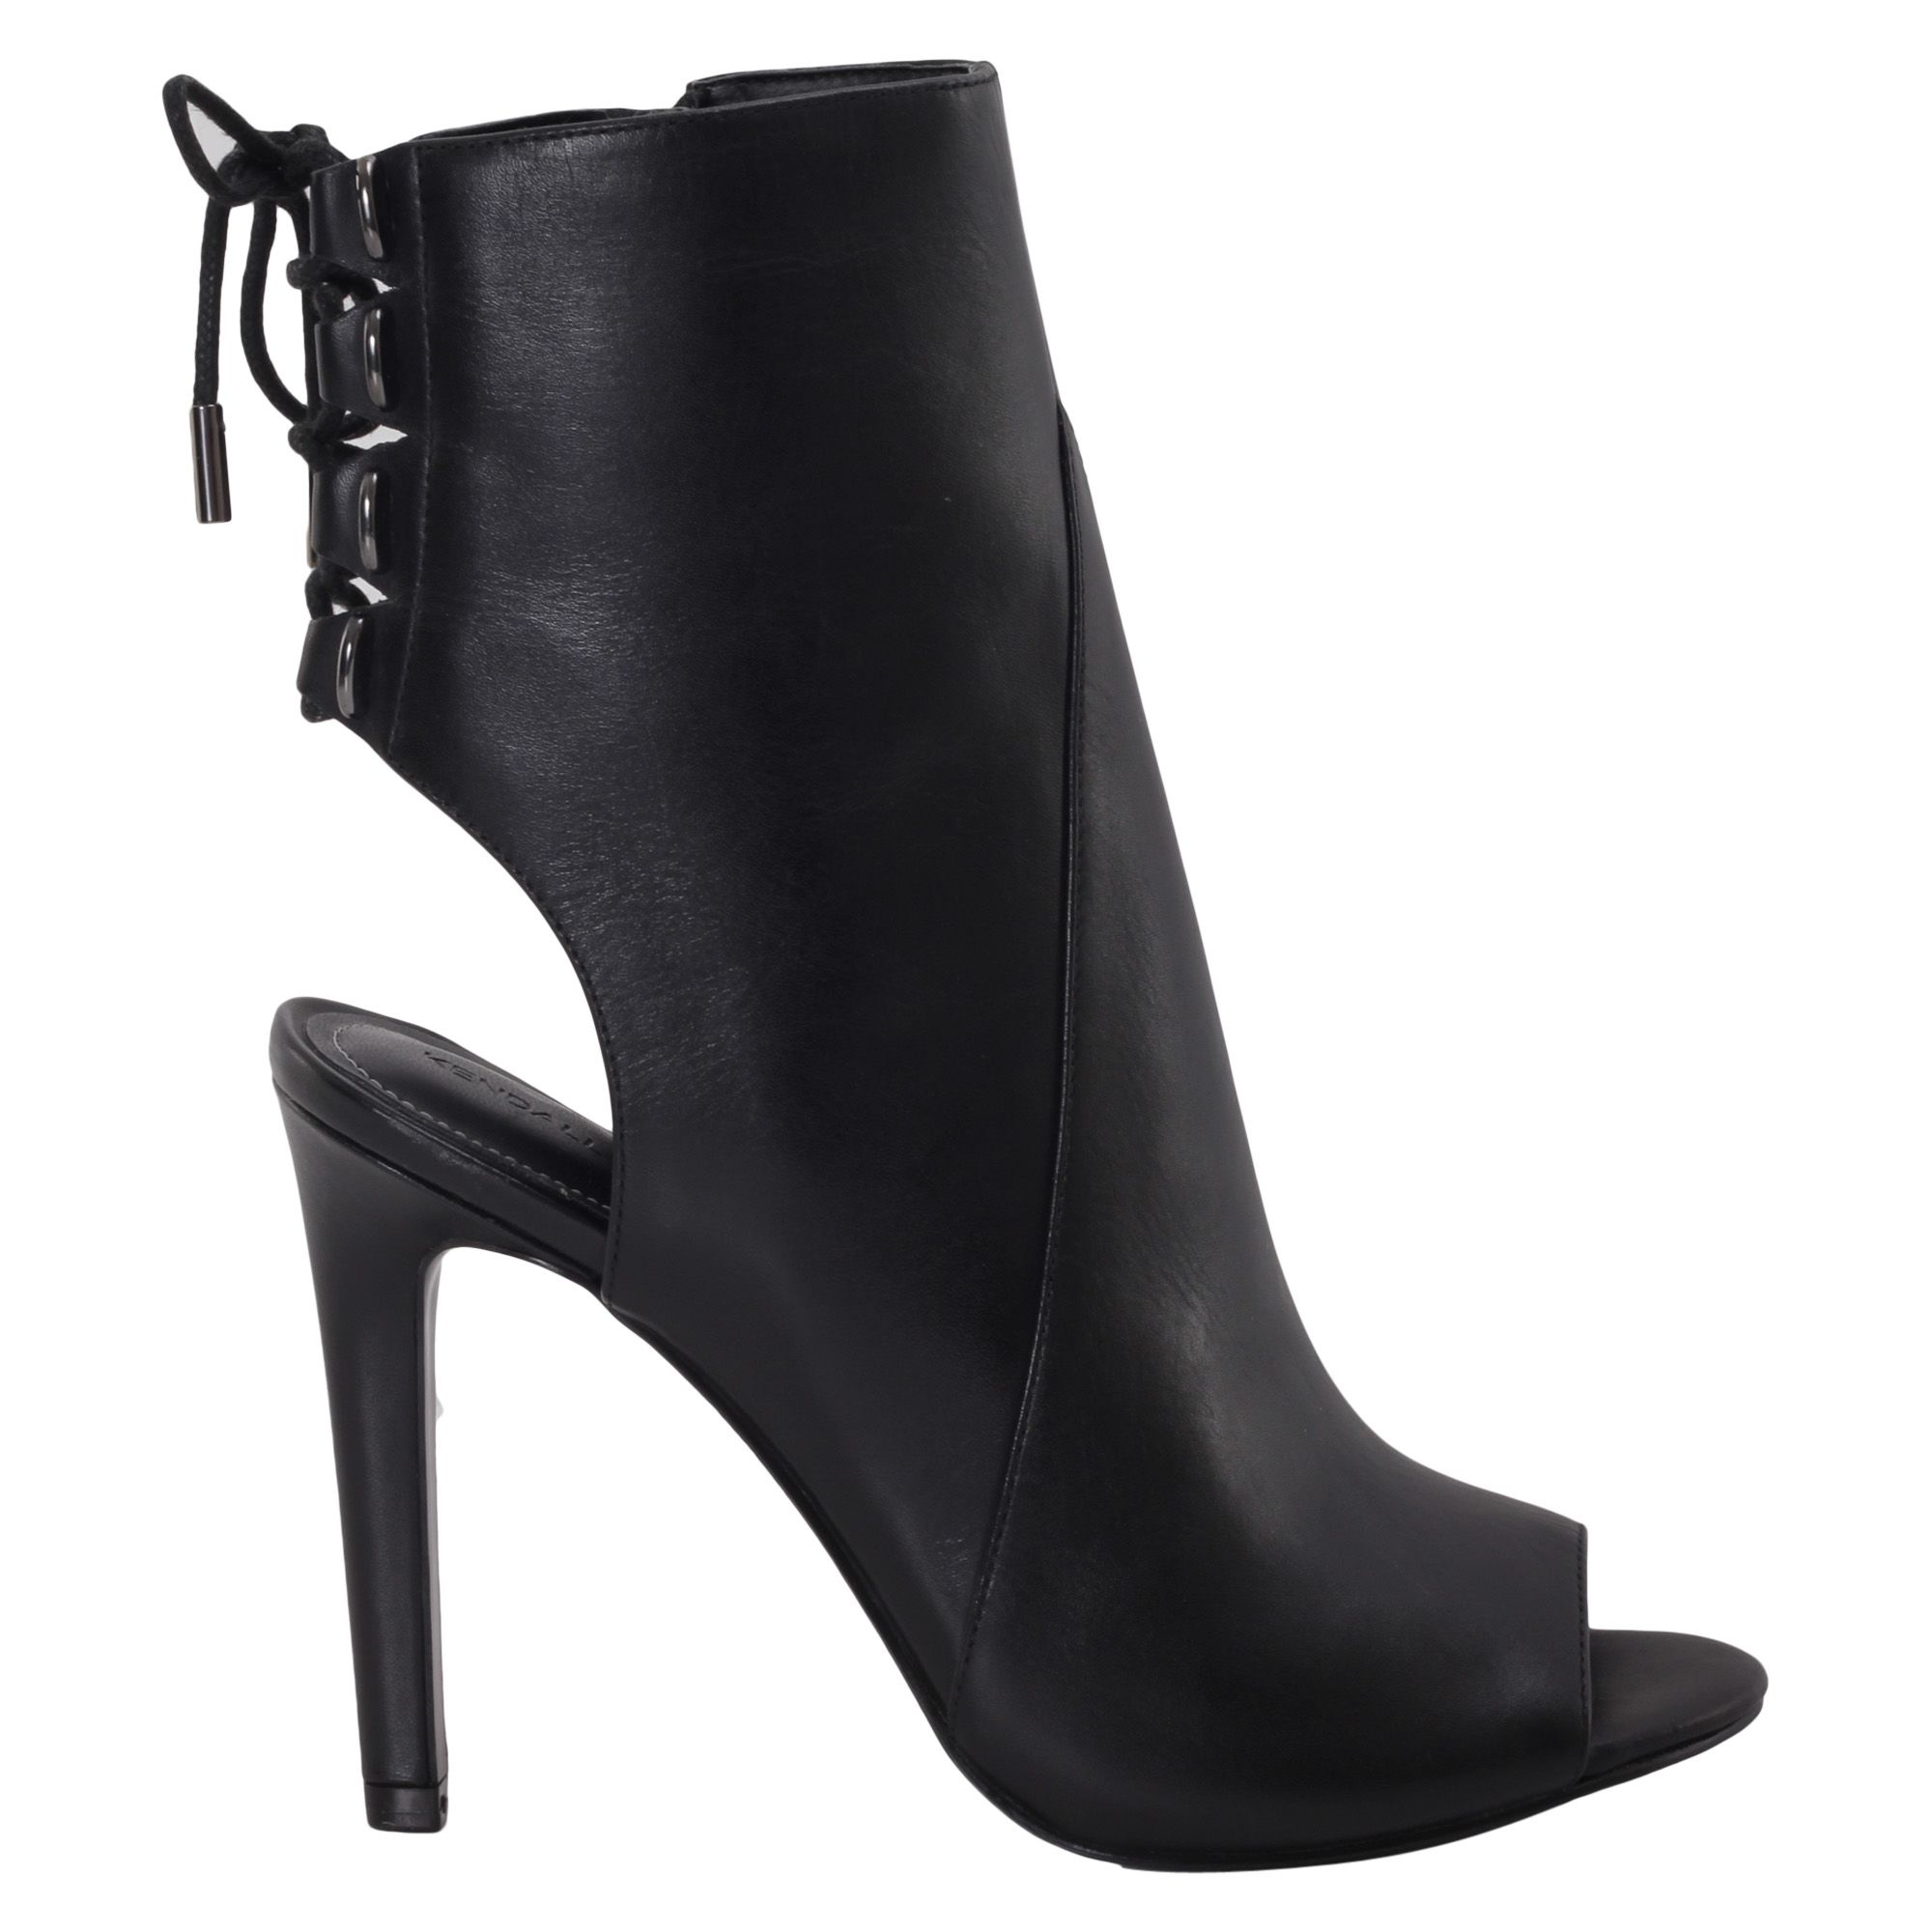 Kendall & Kylie Meadow Ankle Boot